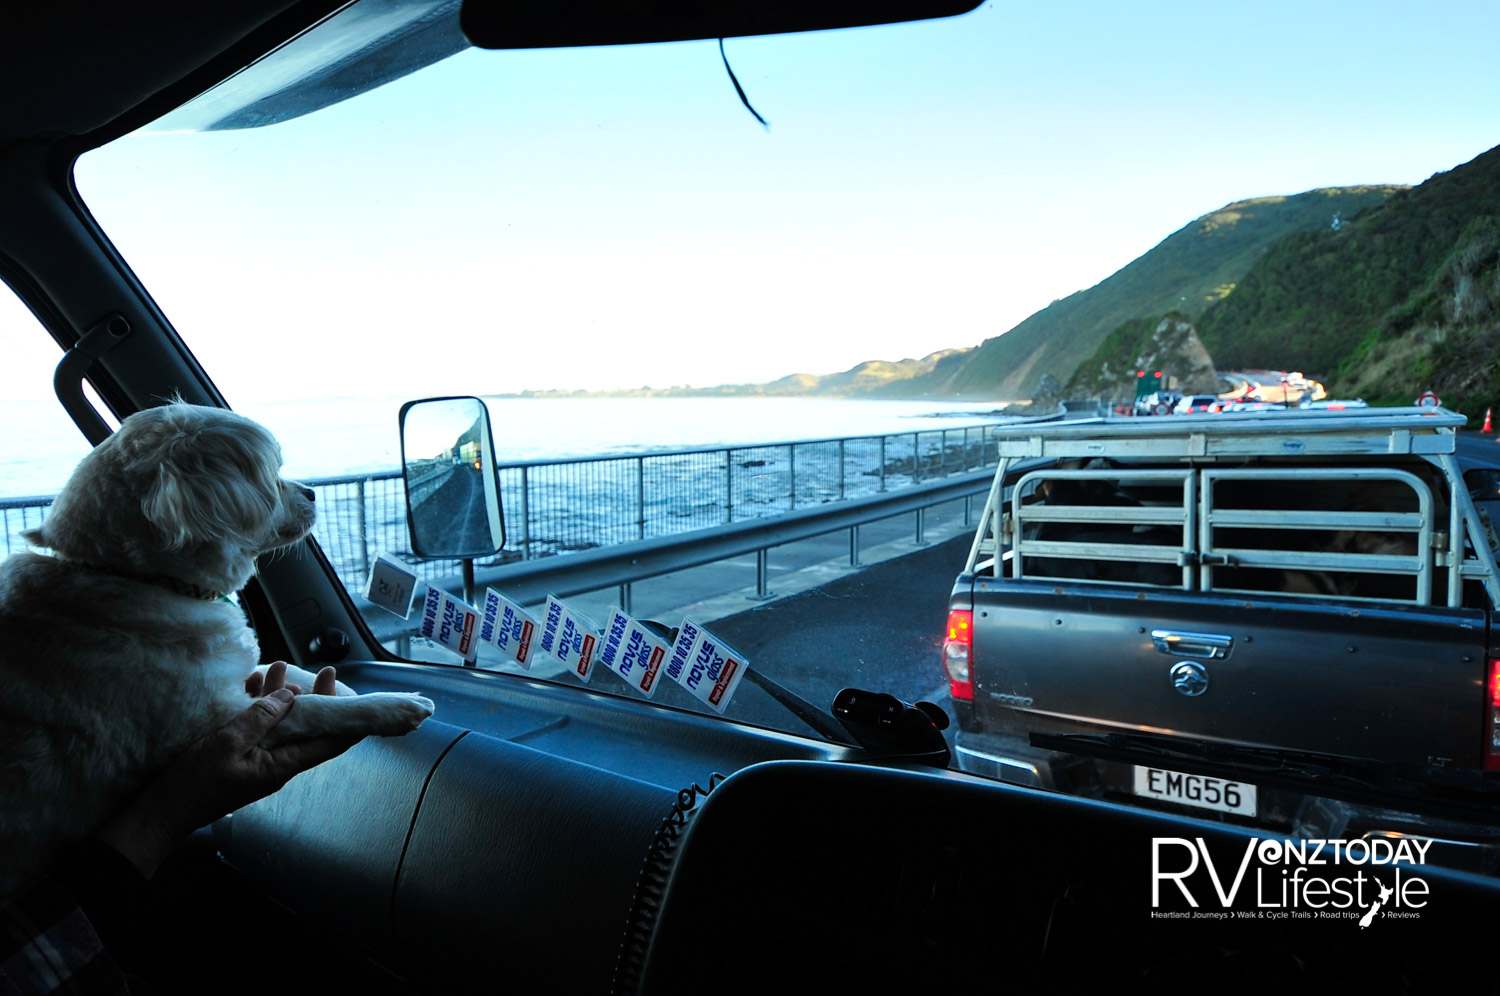 I've driven this Kaikōura Coast road before